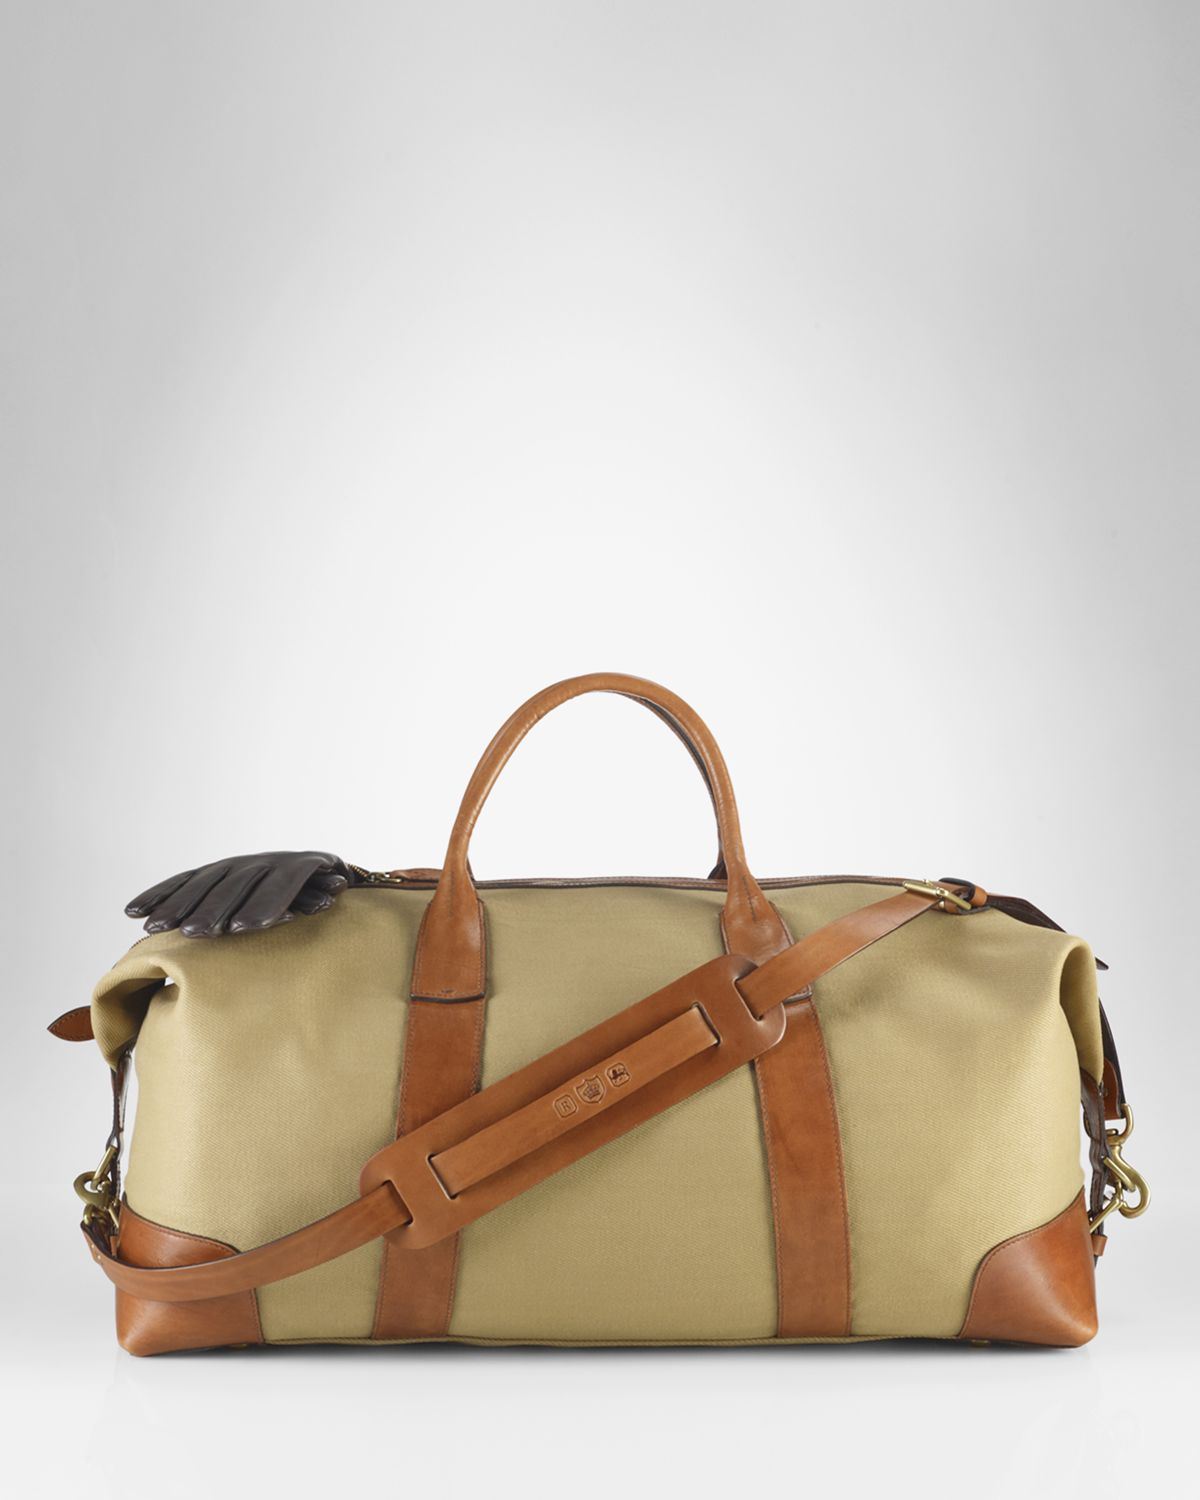 18611ce5f4c7 Lyst - Ralph Lauren Polo Canvas Duffle Bag in Natural for Men